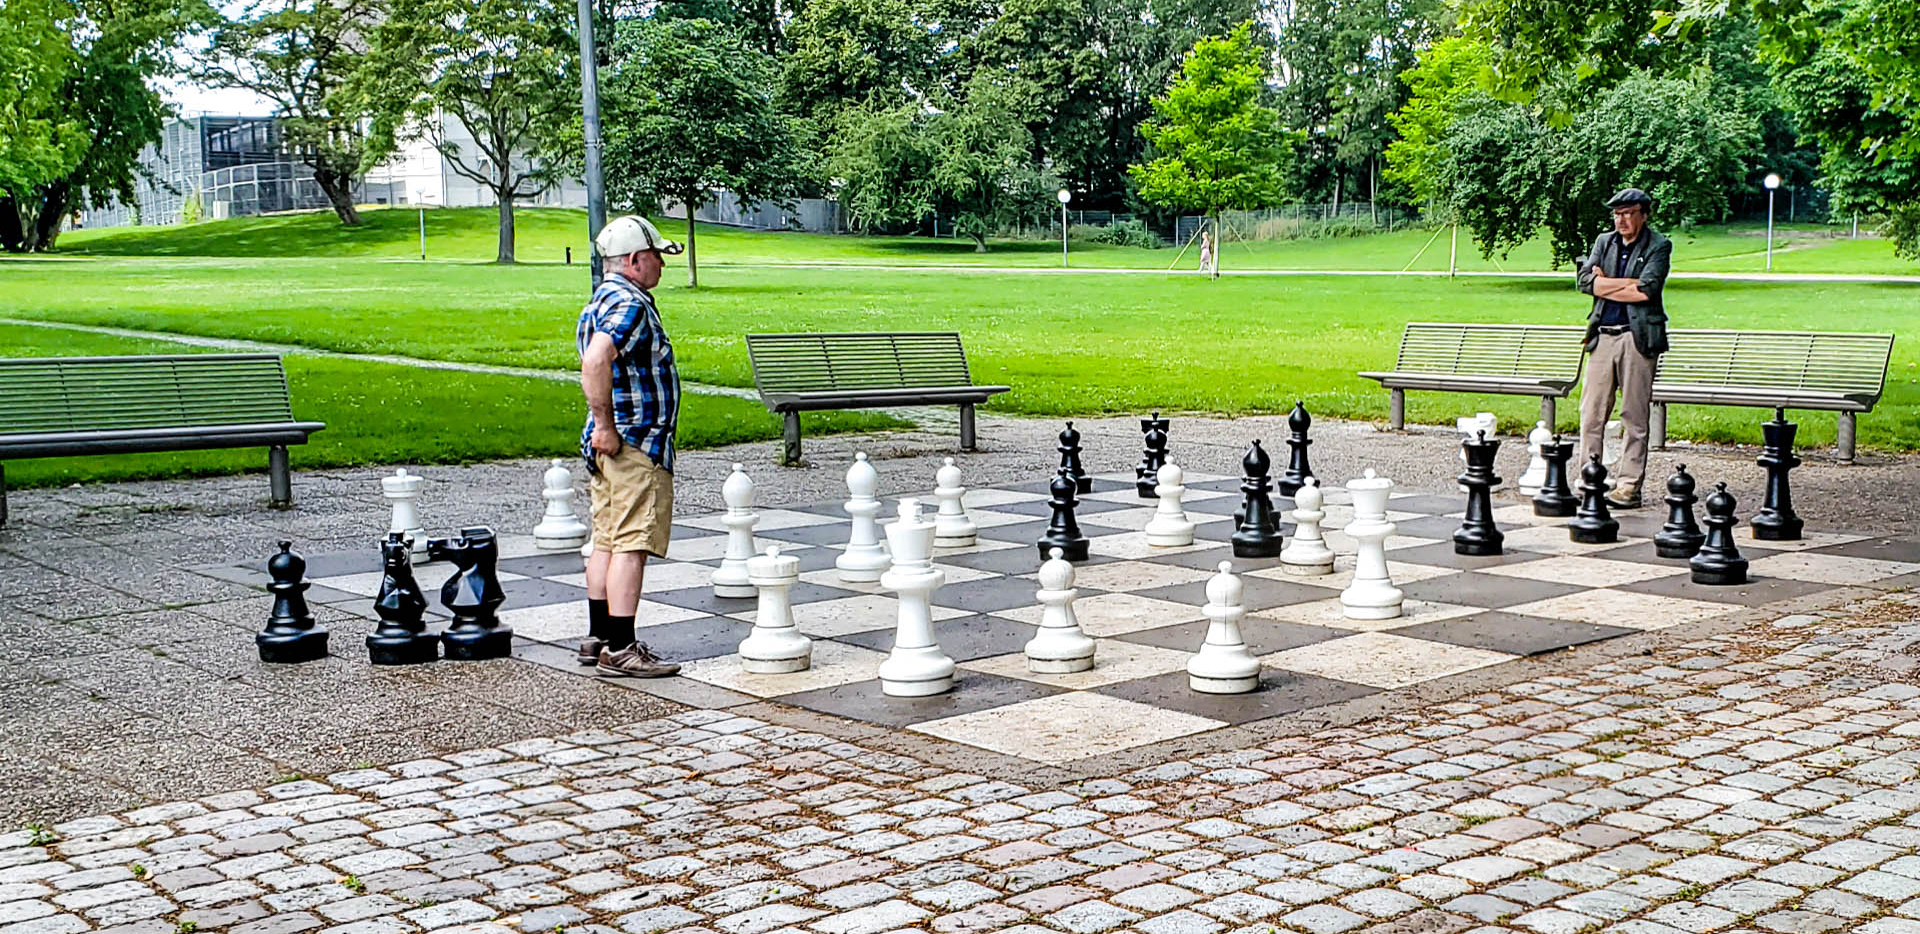 Men Playing Big Chess In Mittlerer Schlossgarten Park